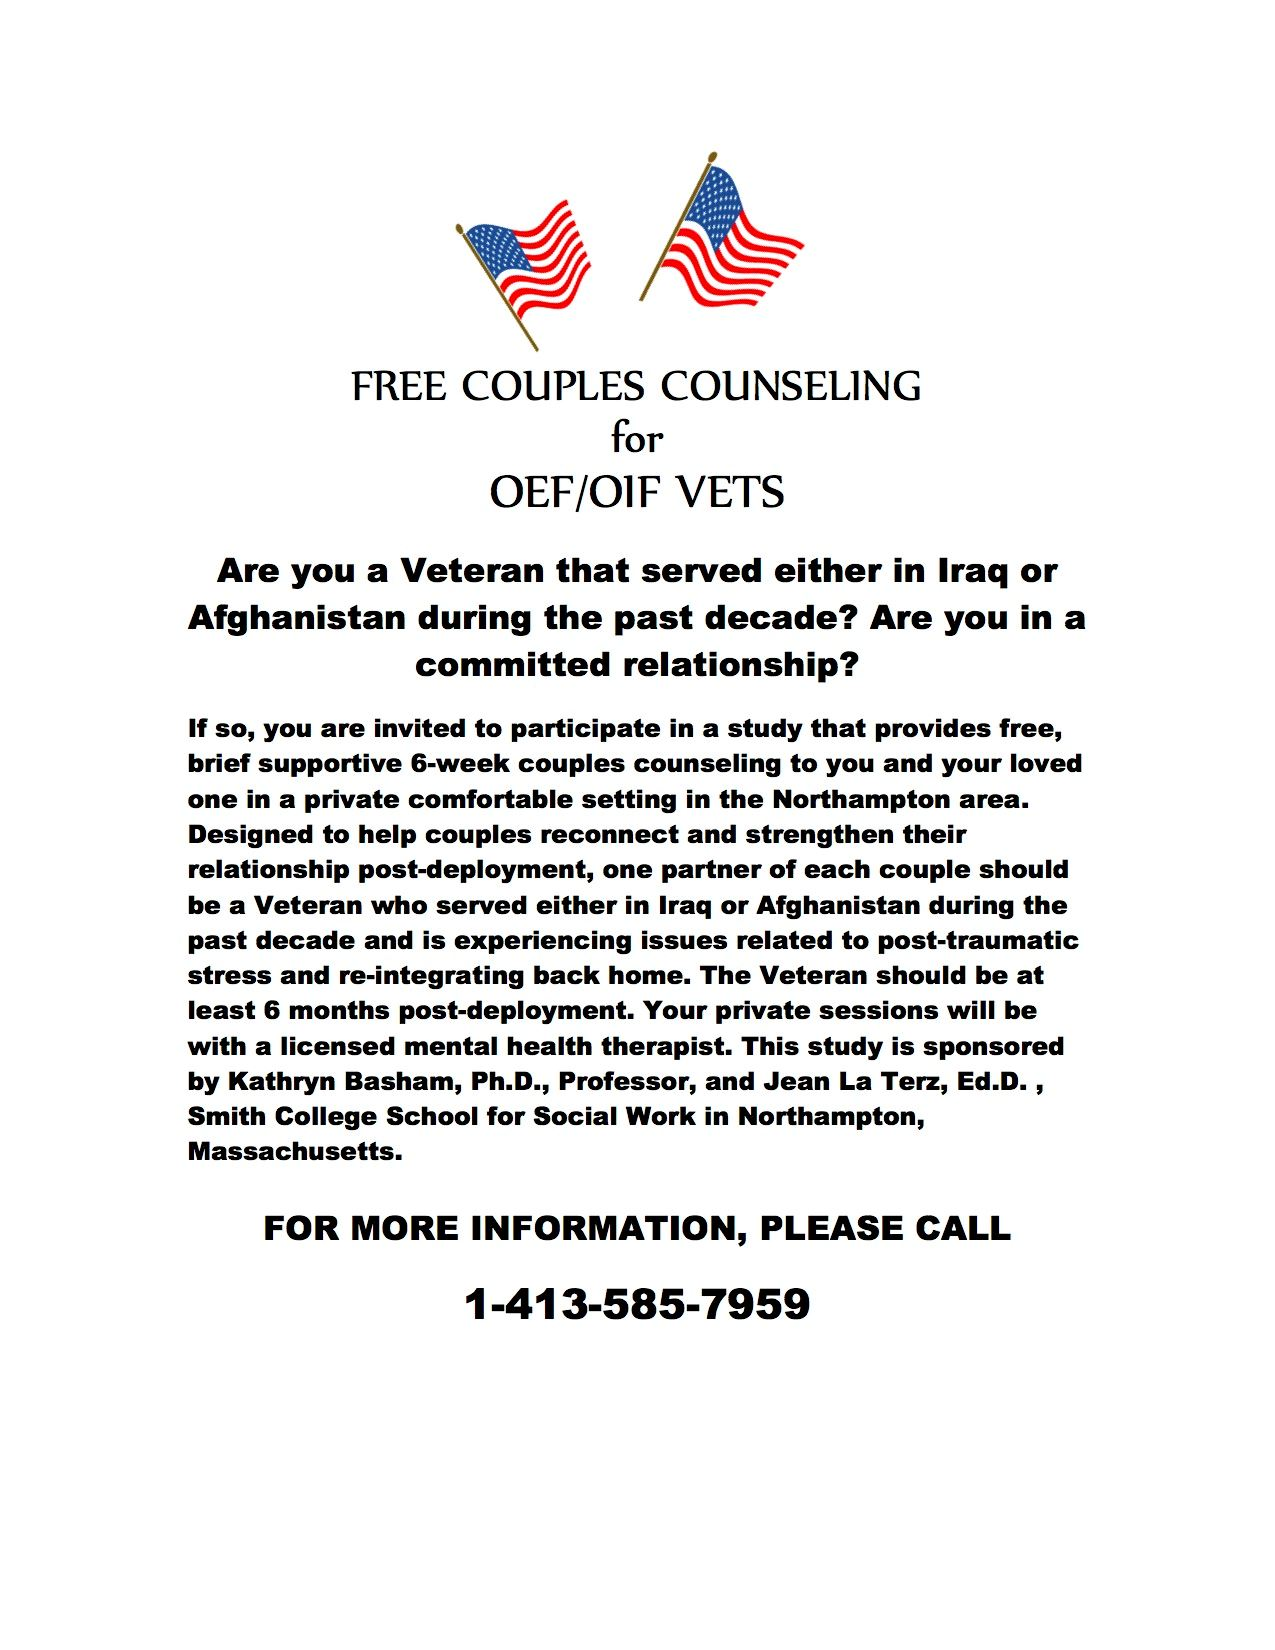 Free Couples Counseling for OEF/OIF Vets flyer